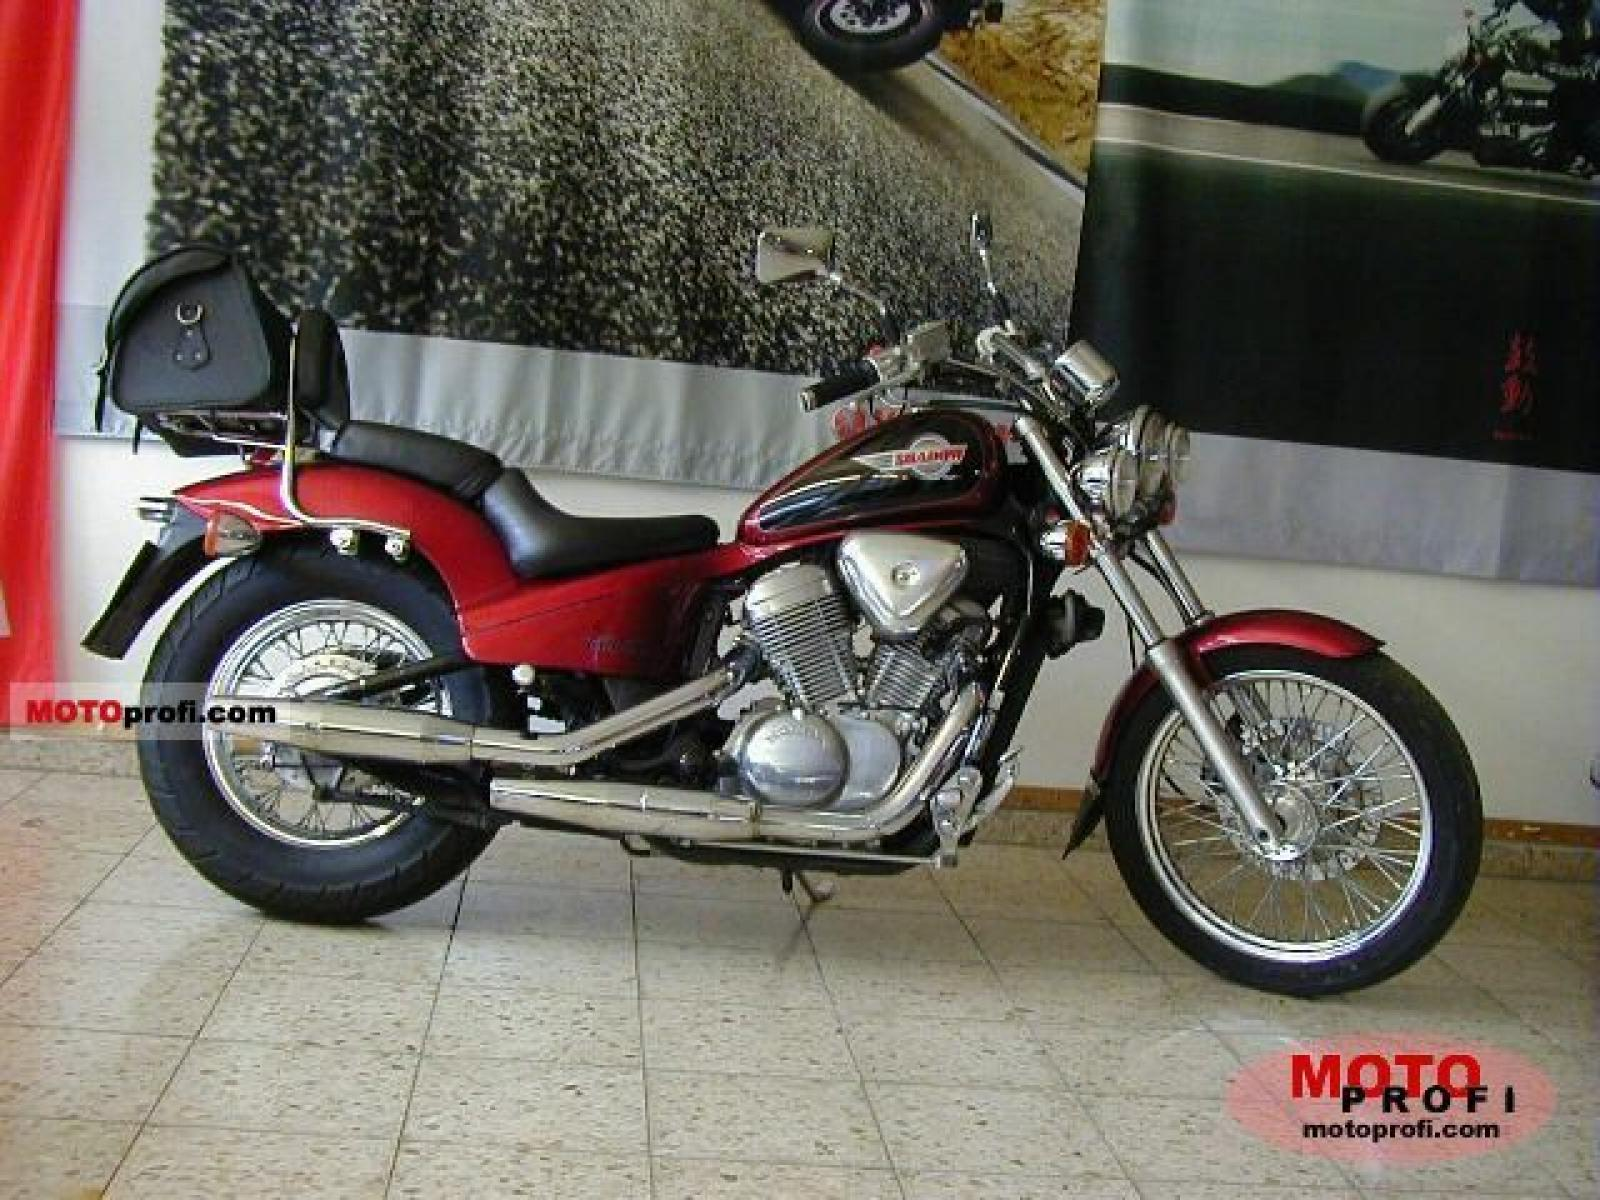 1992 Honda VT600C (reduced effect) #1